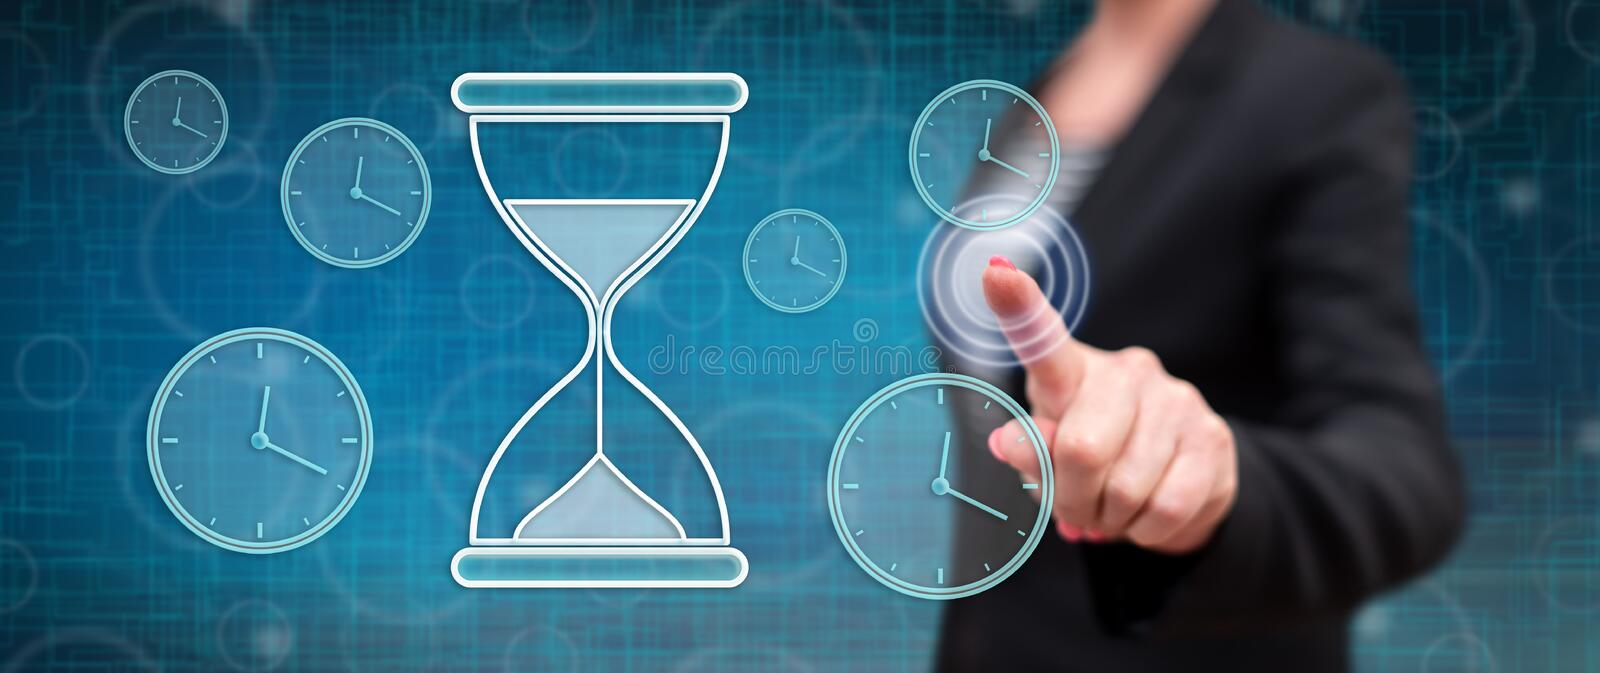 Woman touching a time management concept royalty free stock image